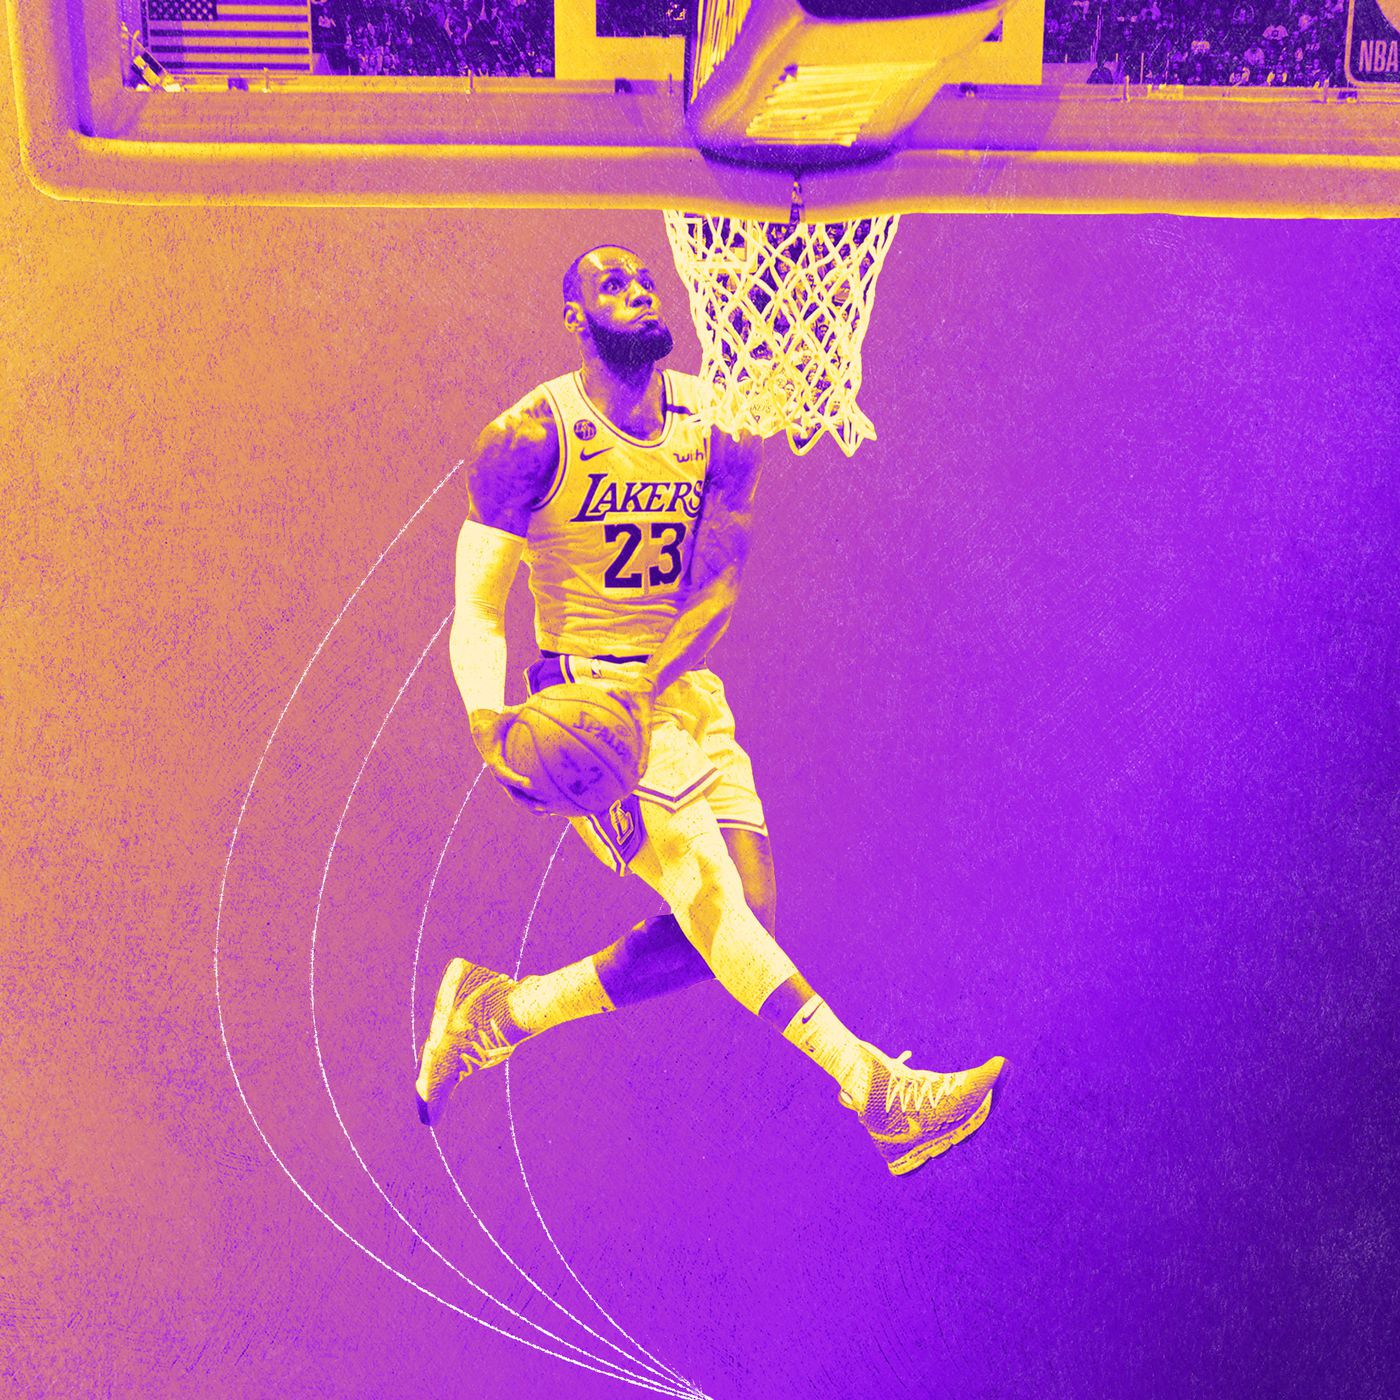 Defining Moments Of The Nba Season One Lebron Dunk Becomes The Perfect Kobe Tribute The Ringer